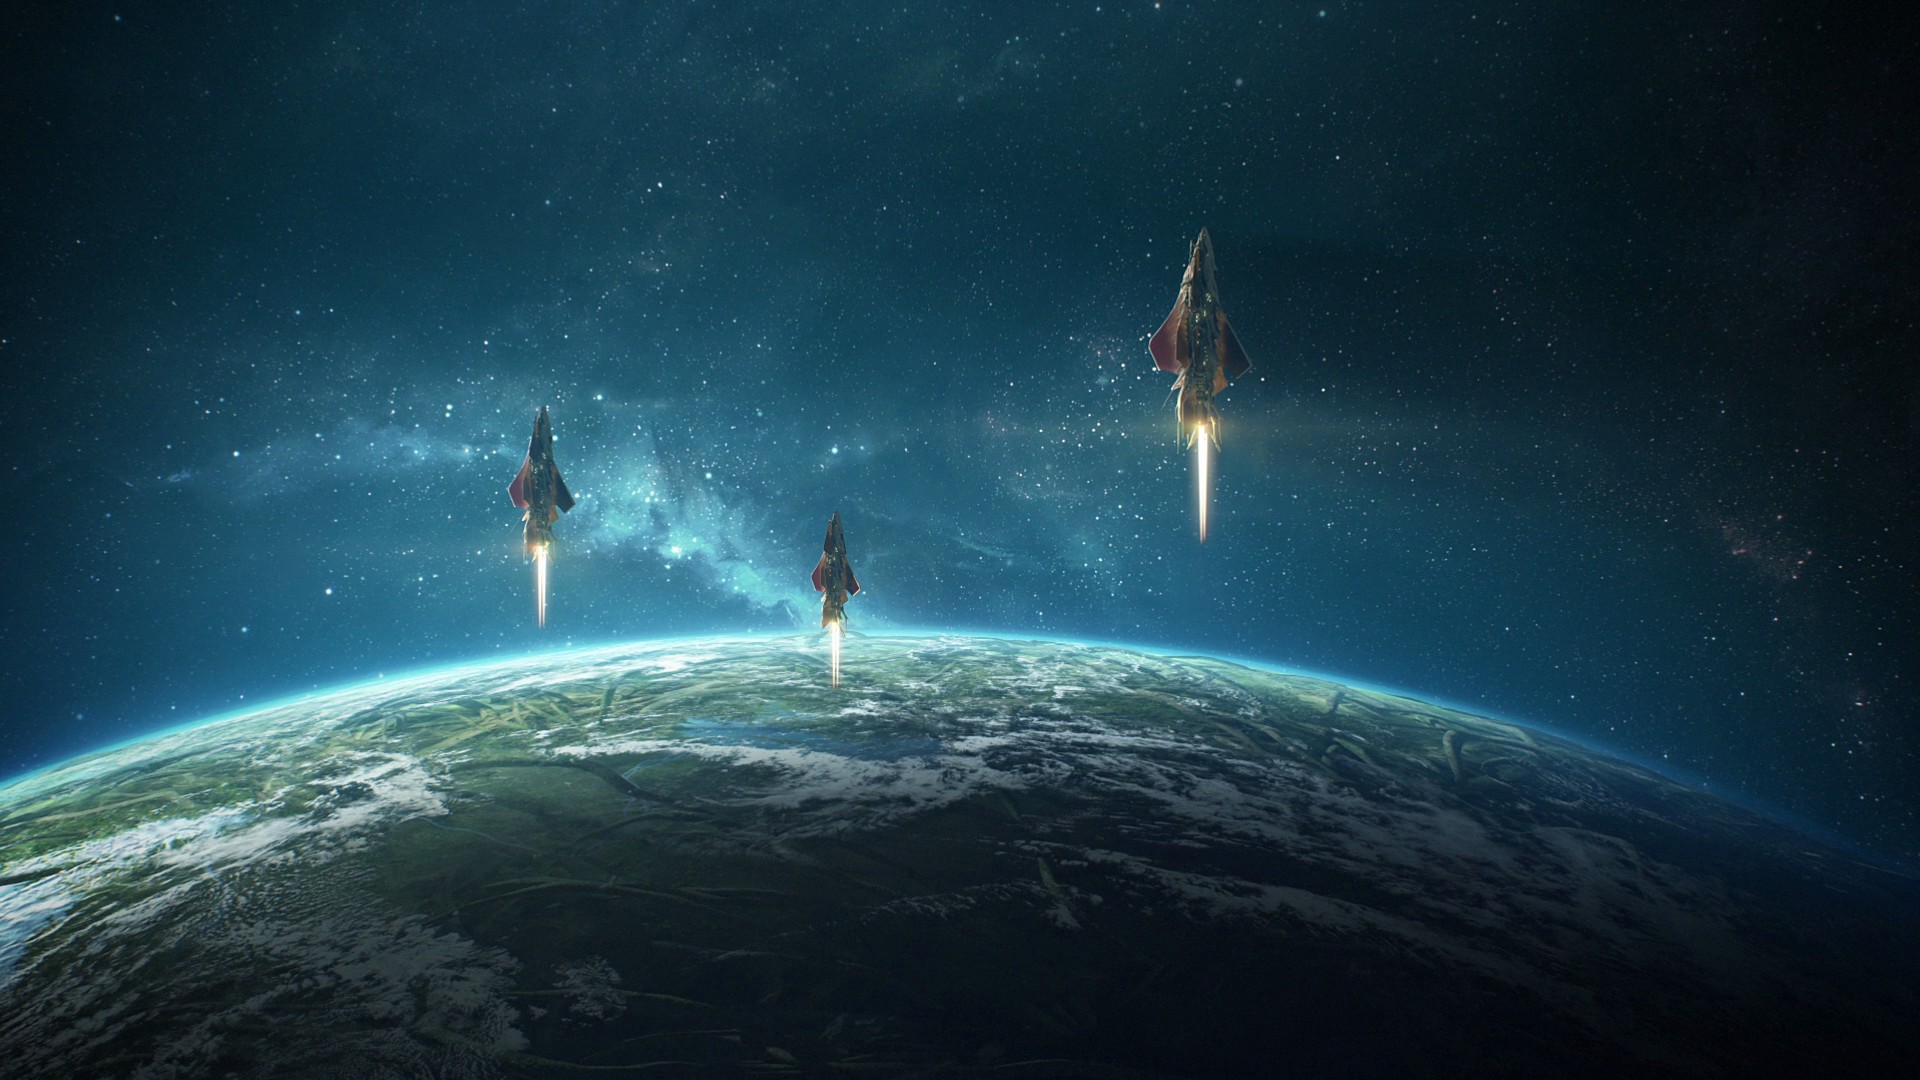 18 Endless Space 2 HD Wallpapers